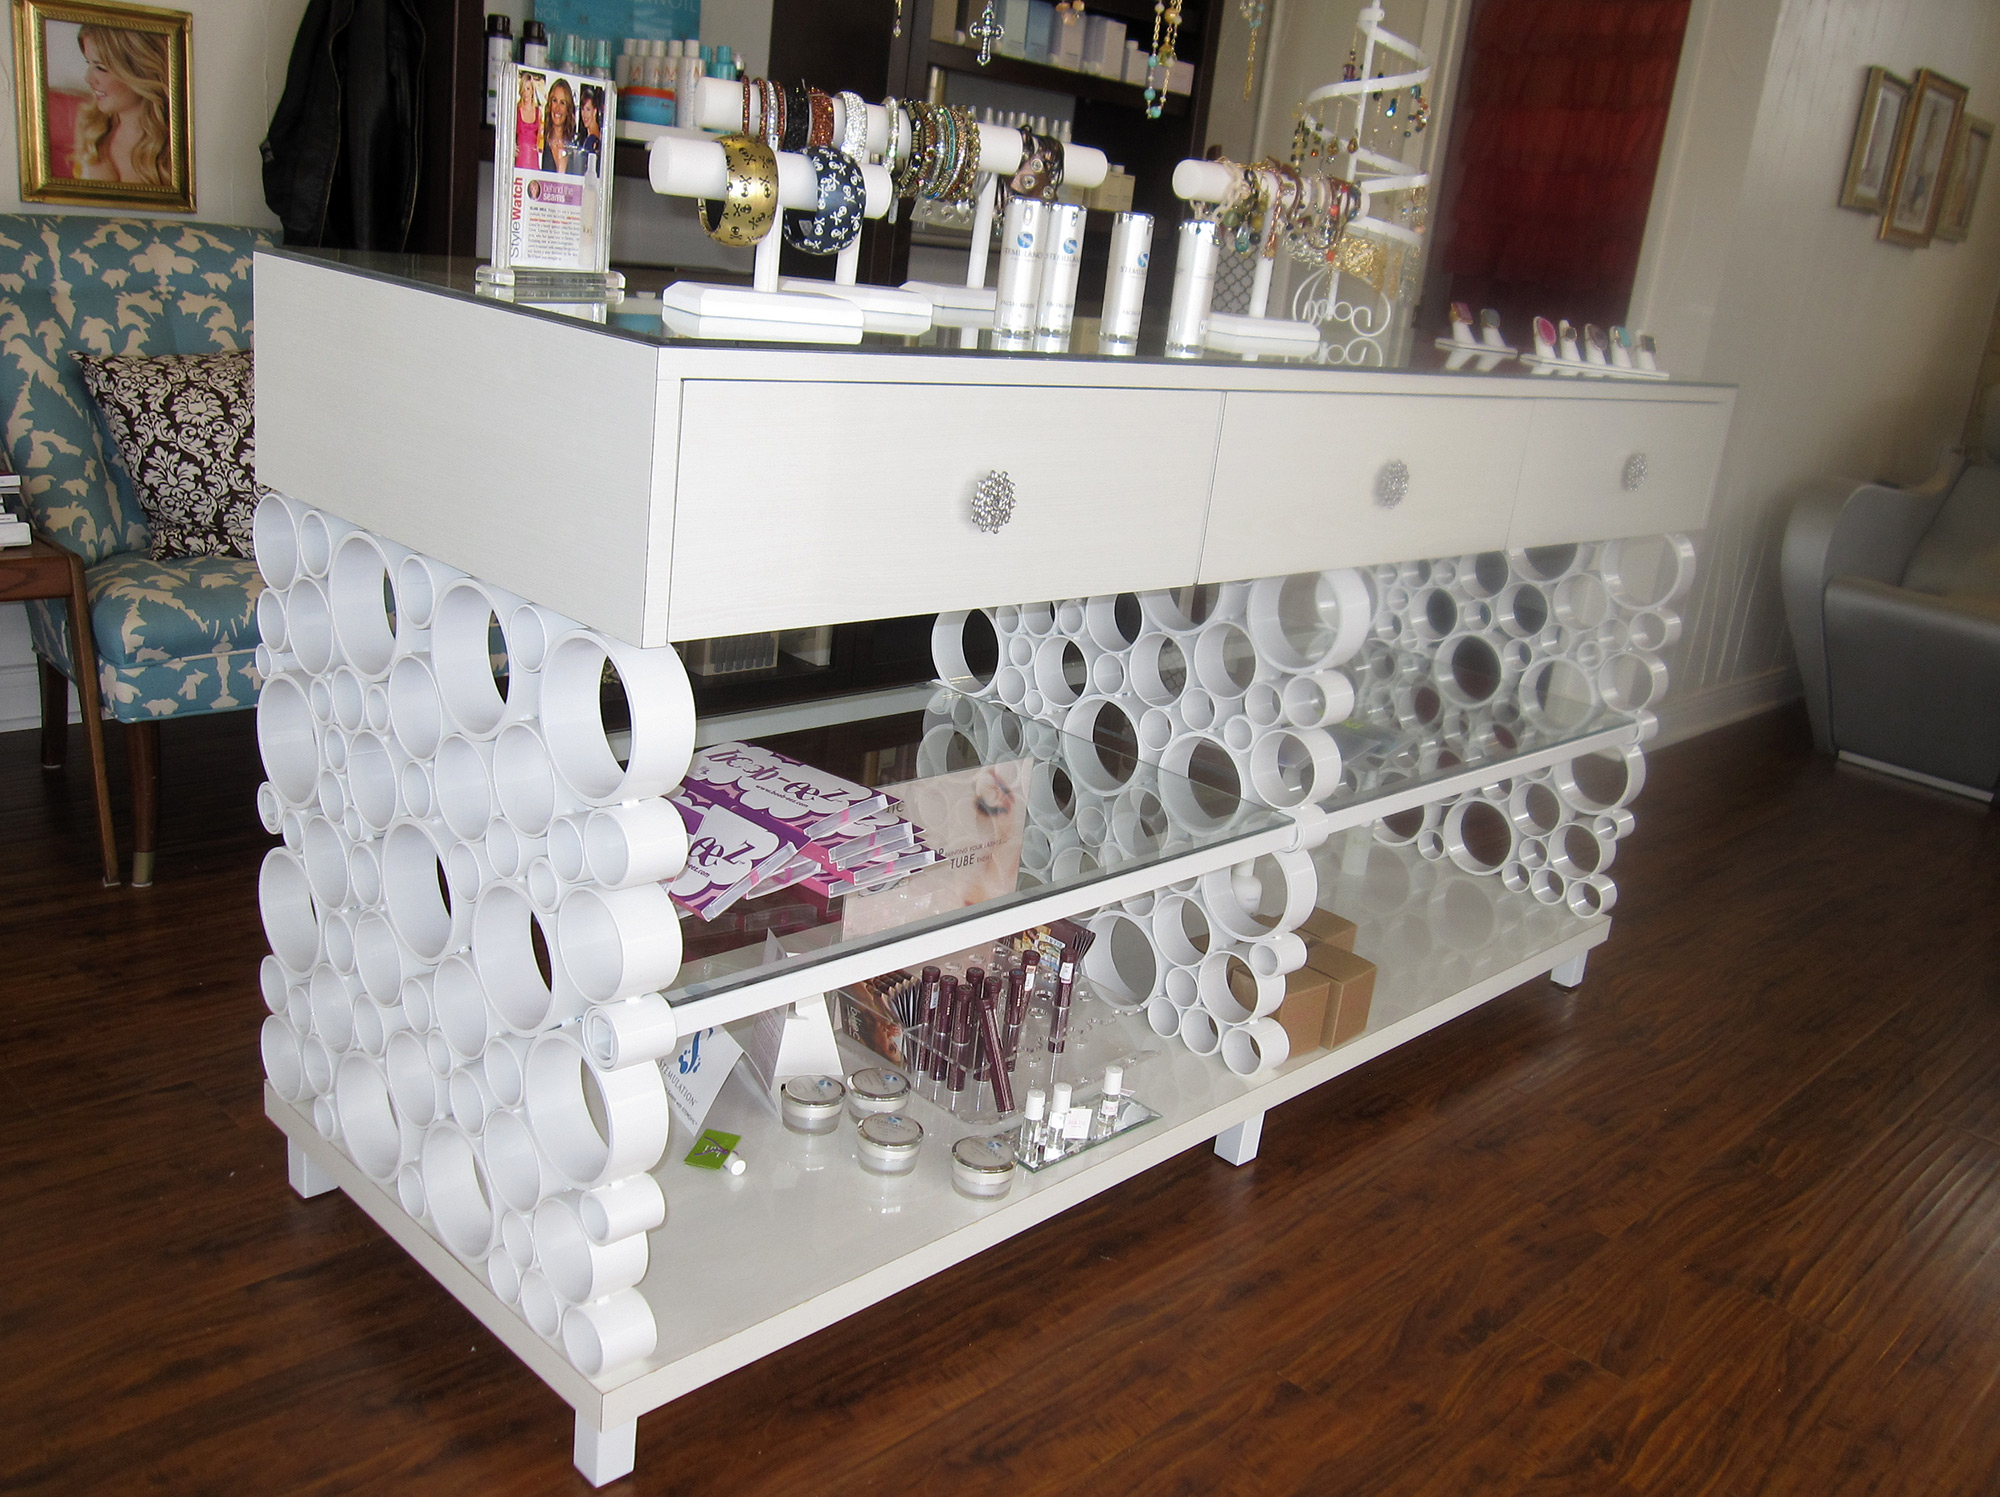 06-Display-Table.jpg